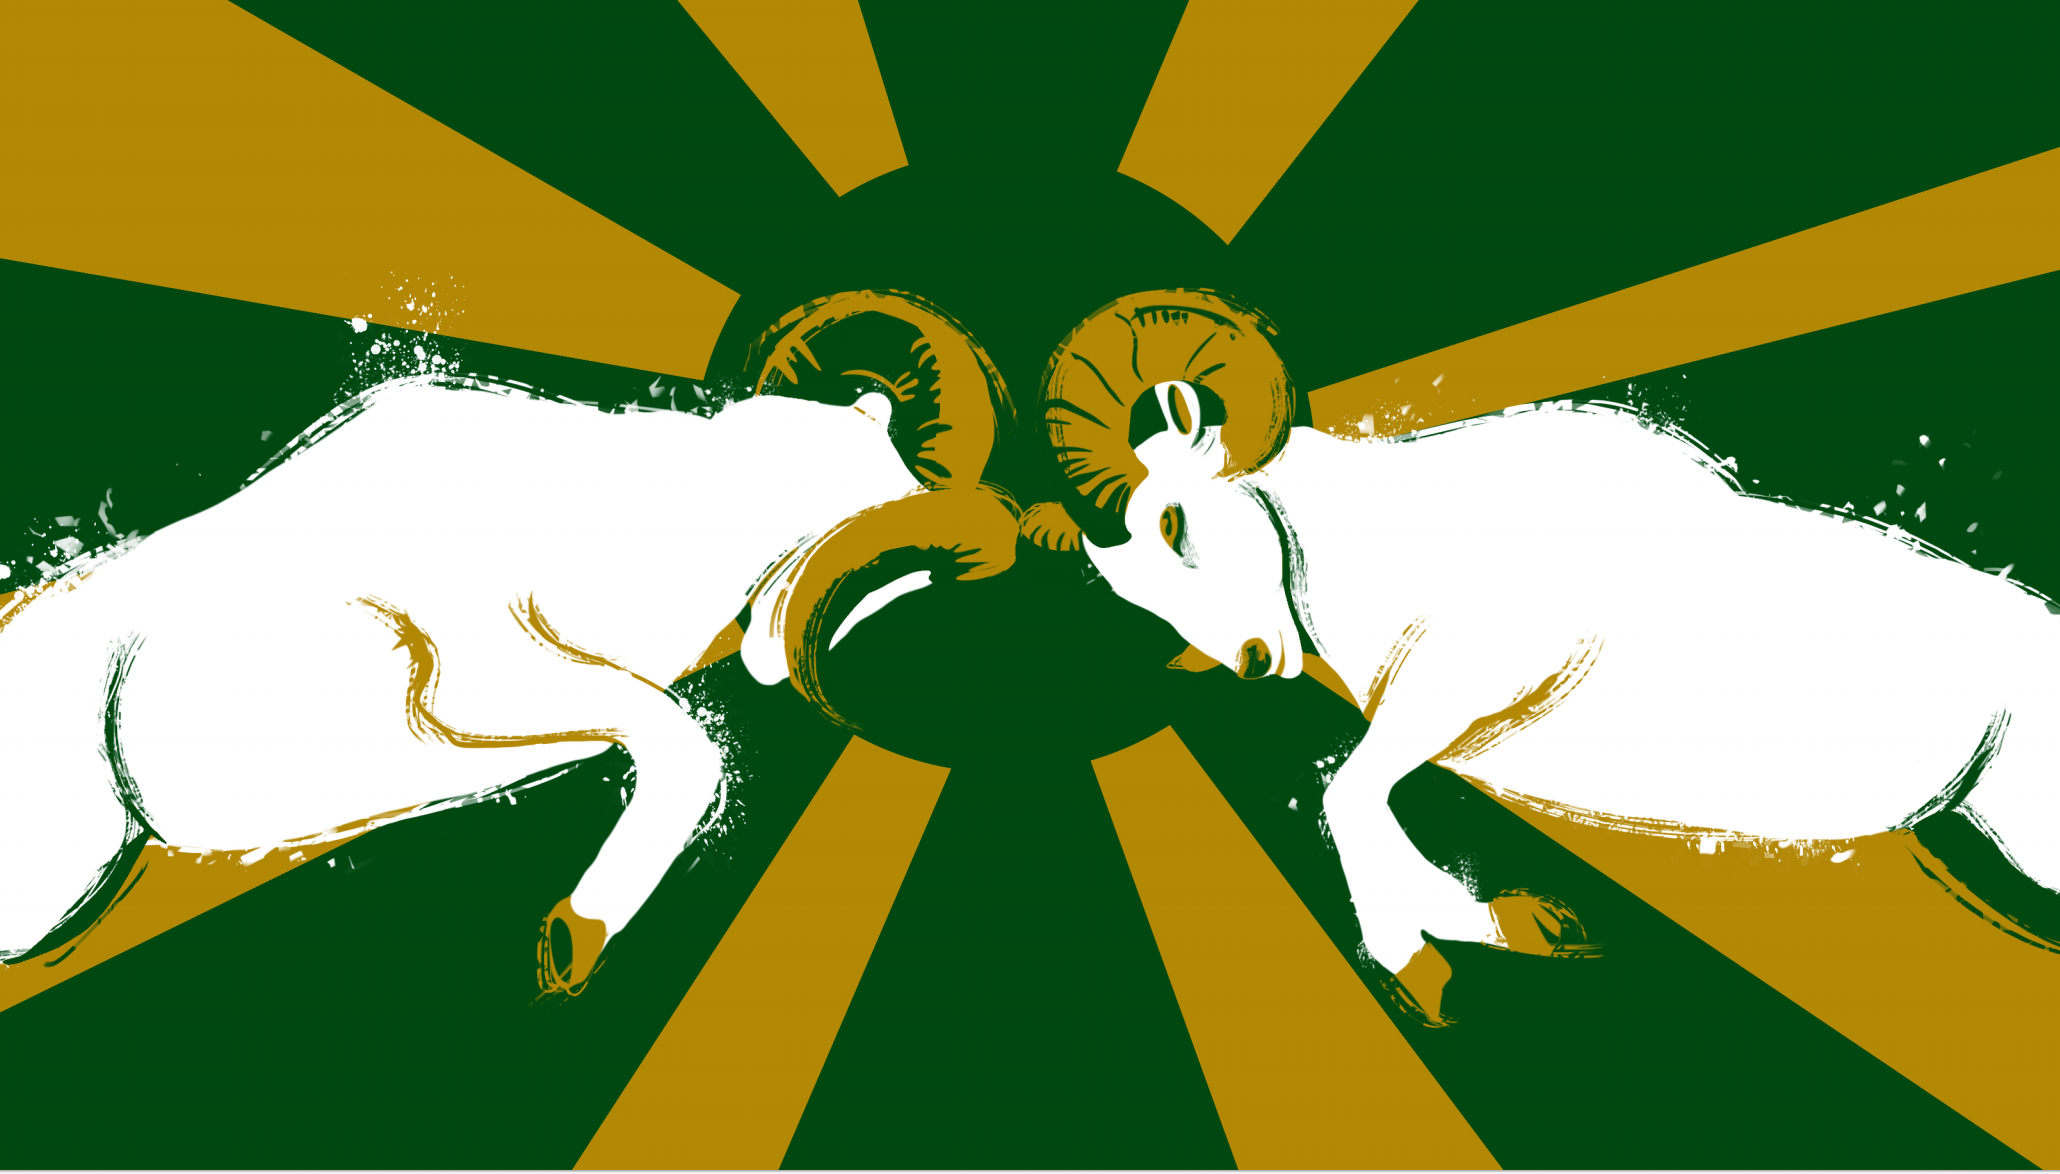 Clash Of Rams: Associated Students Of Colorado State University (ASCSU)